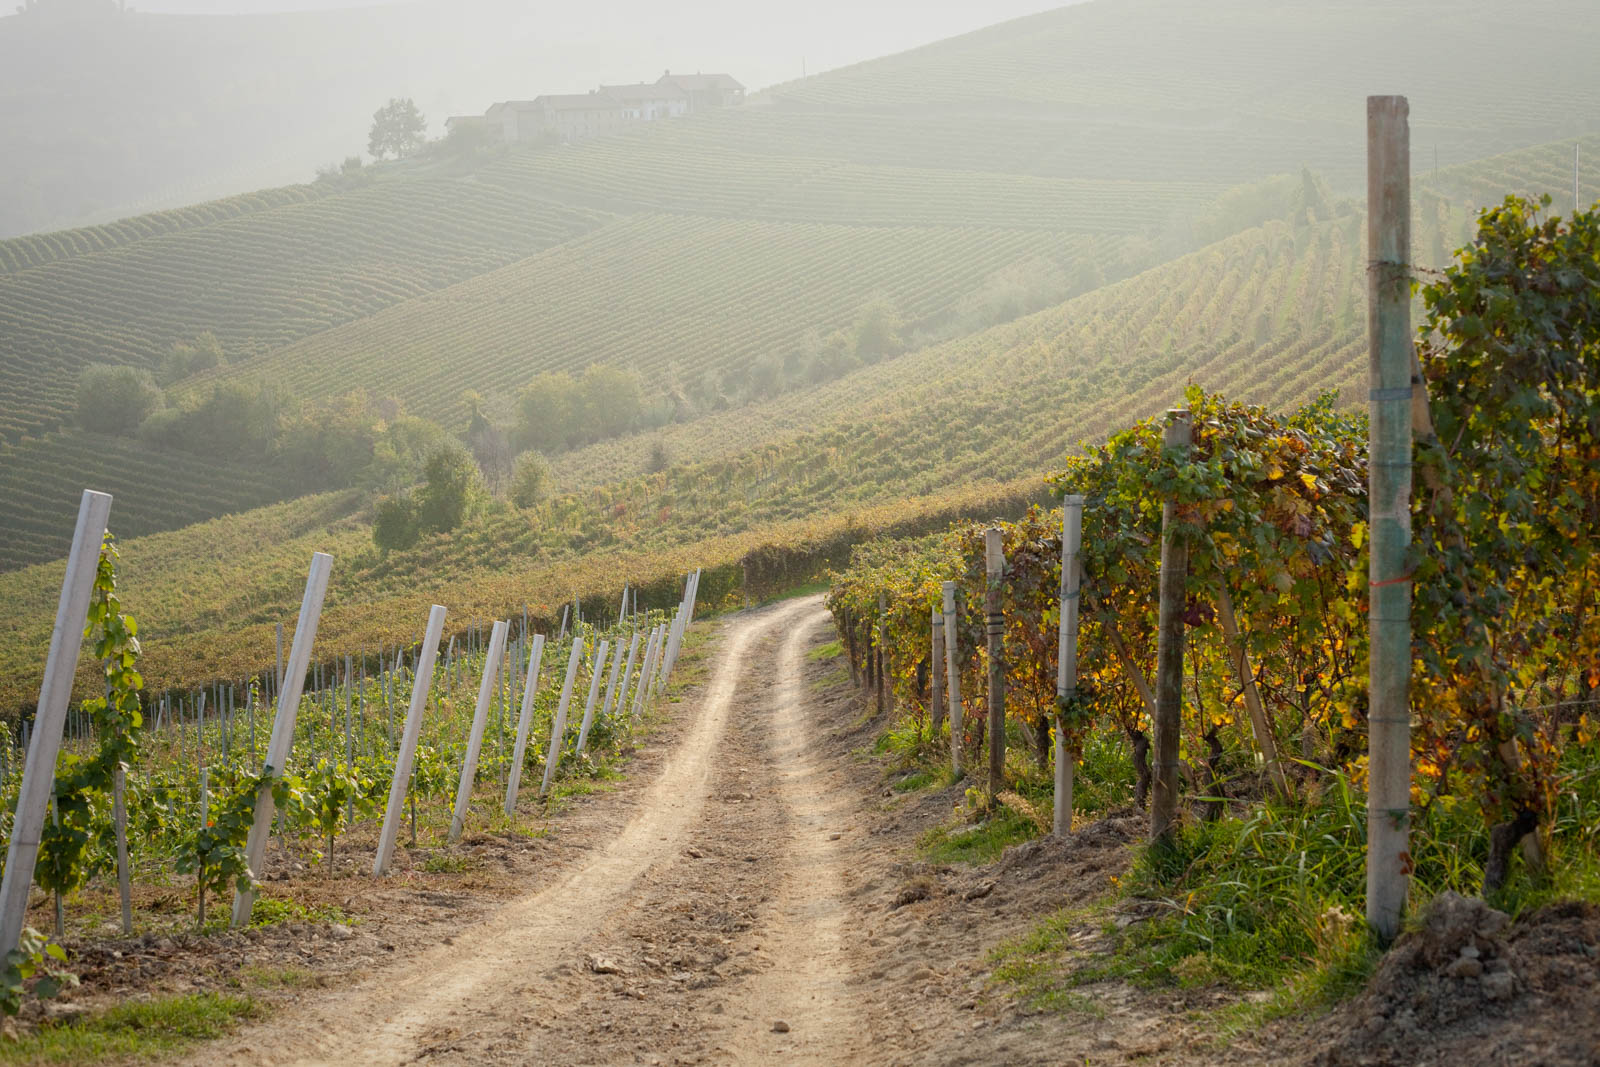 The Brunate vineyard between La Morra and Barolo, Italy. ©Kevin Day/Tanager Photography